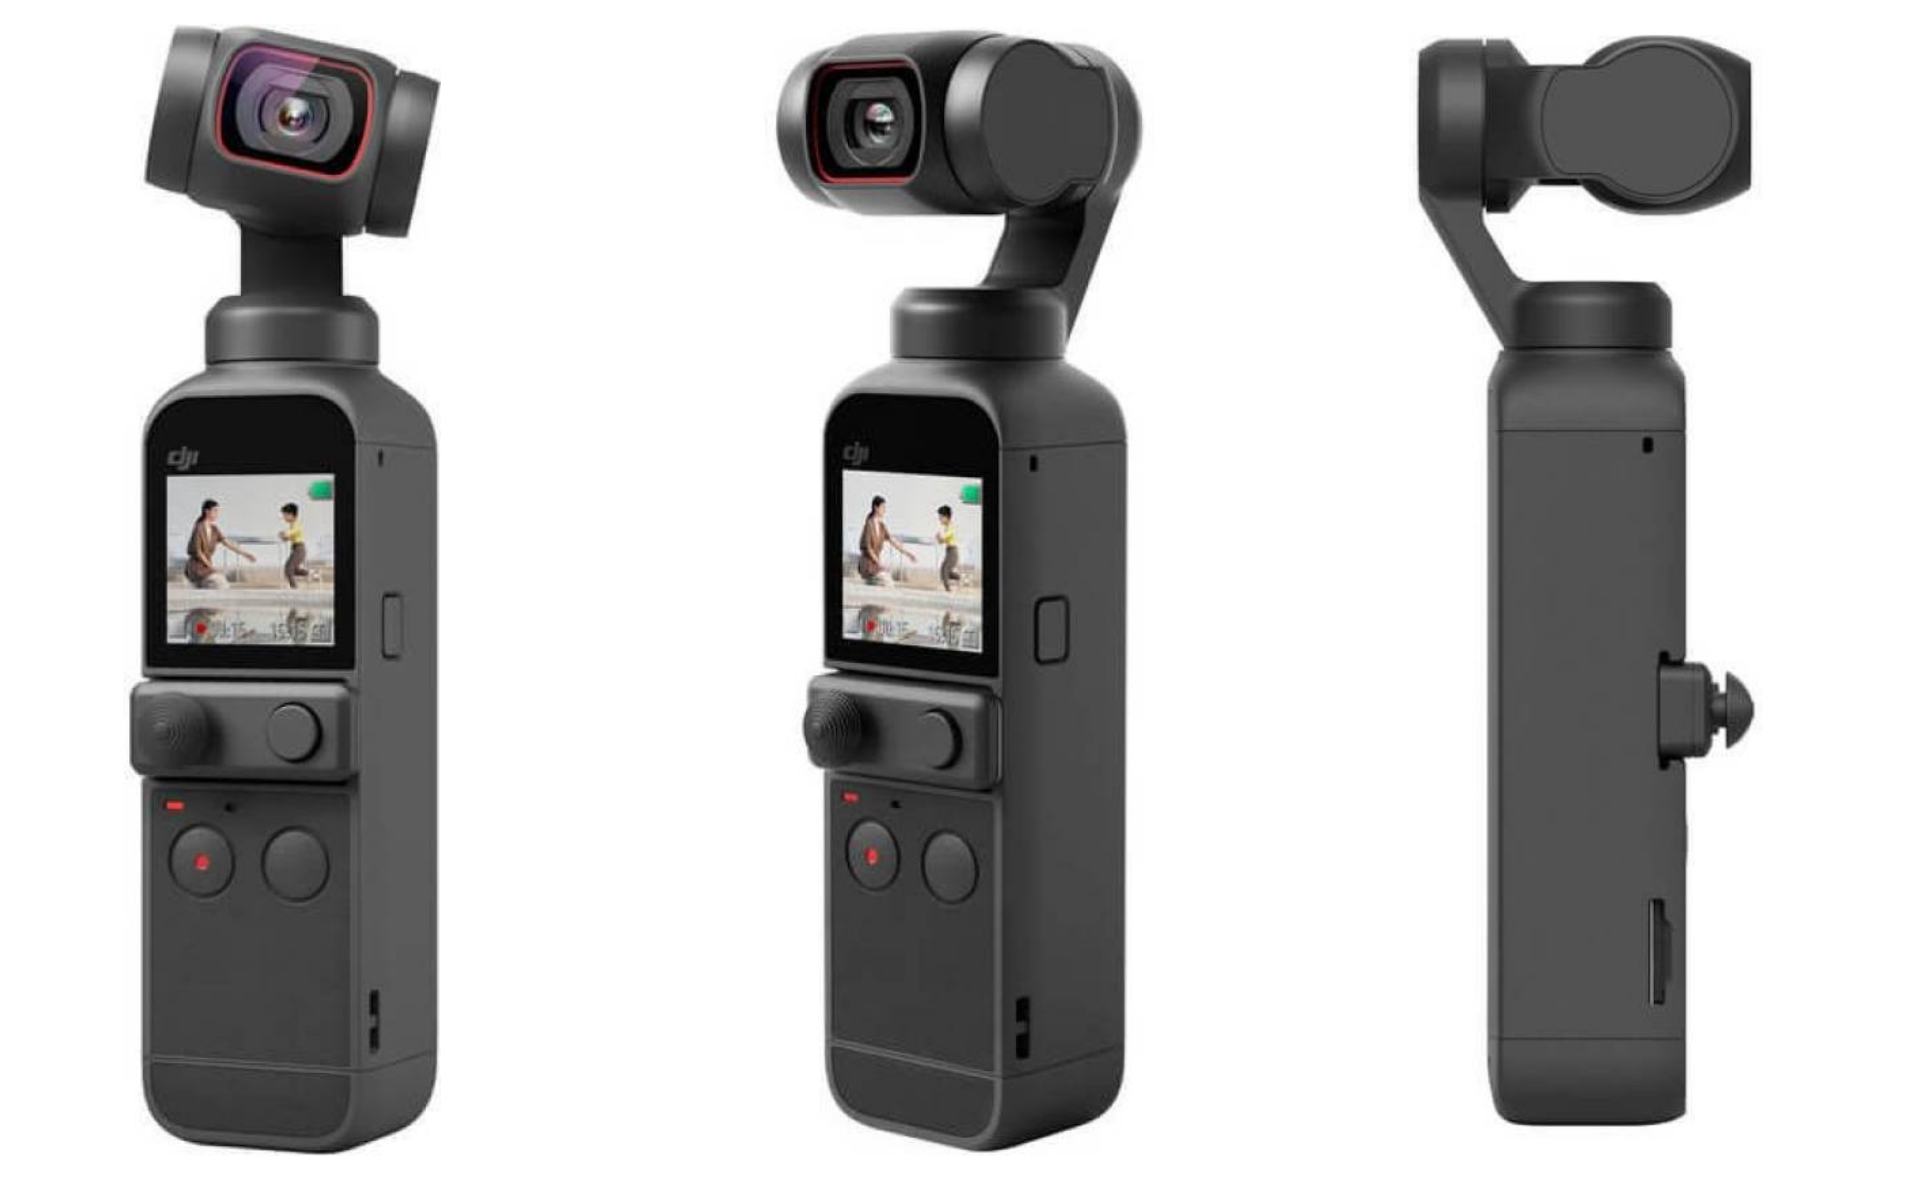 Dji pocket 2 price in India, price compare, full specifications